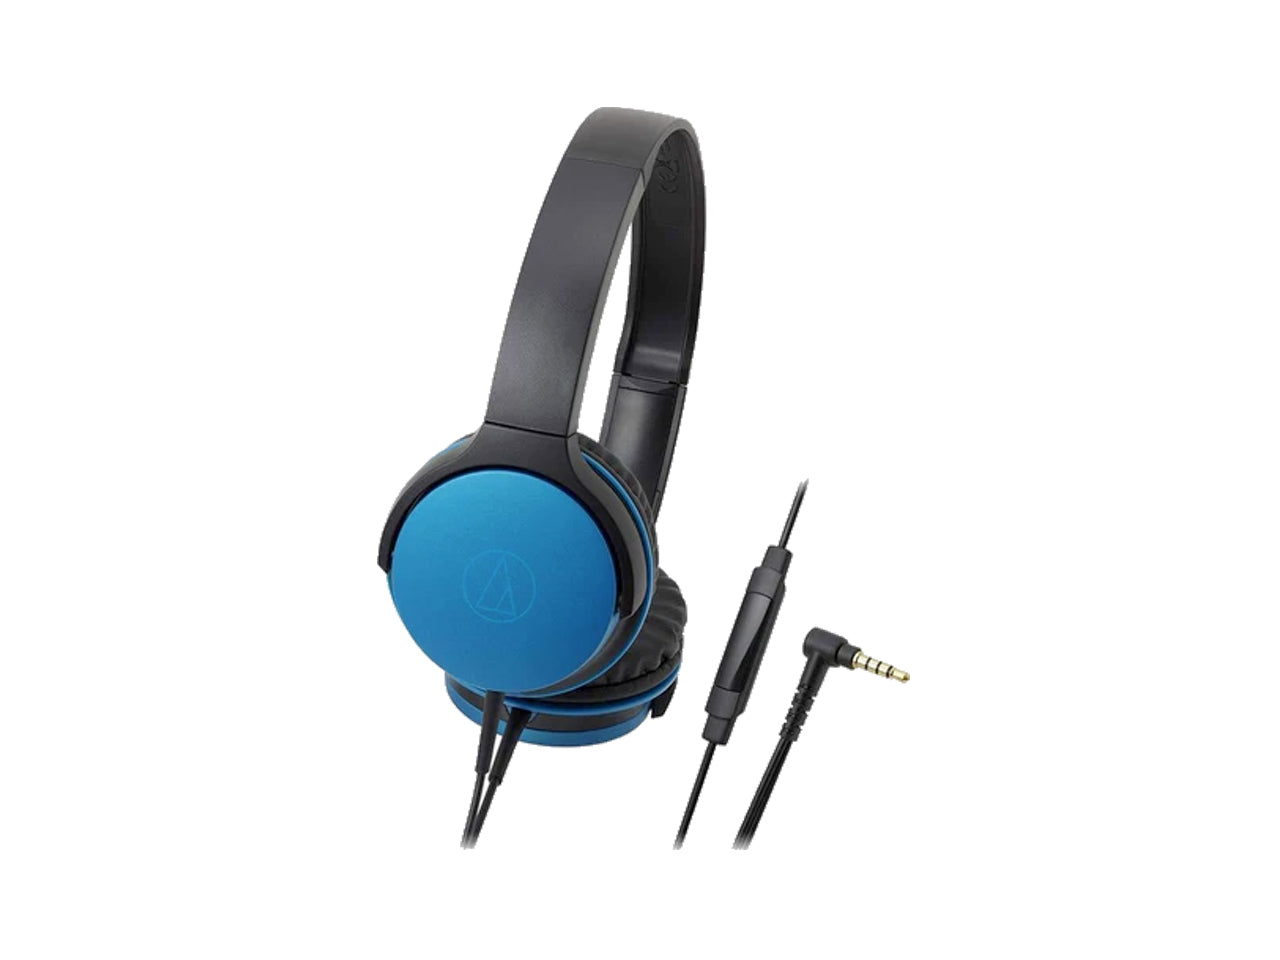 AUDIO TECHNICA ON EAR HEADPHONES WITH 40 MM DRIVERS (BLUE)